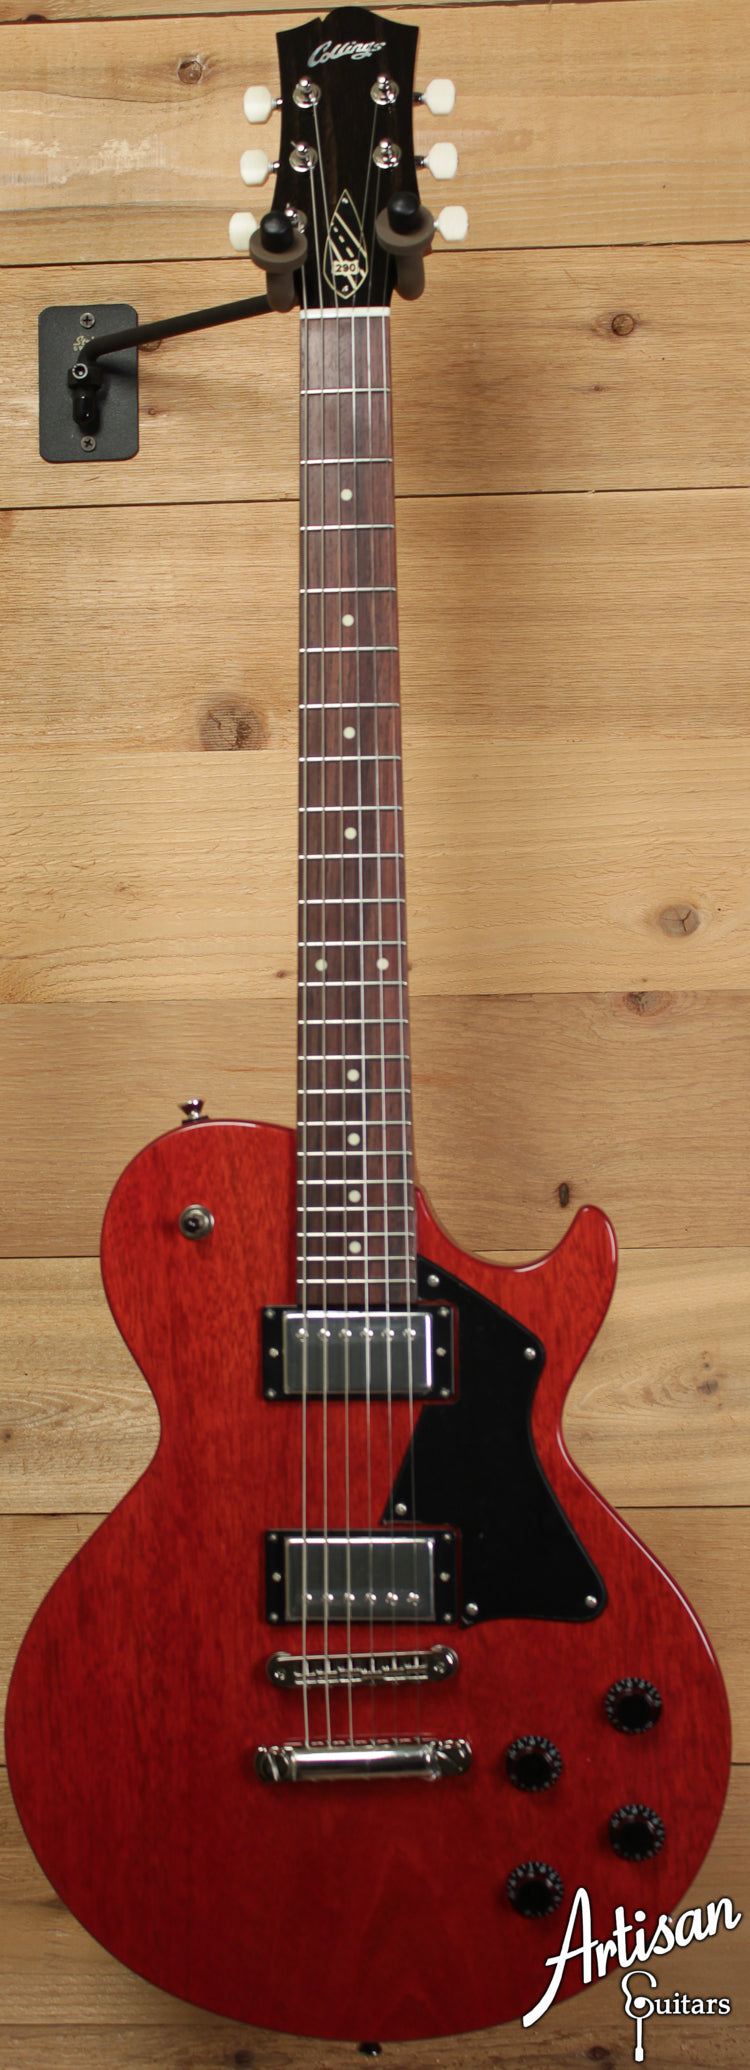 Collings 290 1959 Faded Crimson ID-6539 - Artisan Guitars